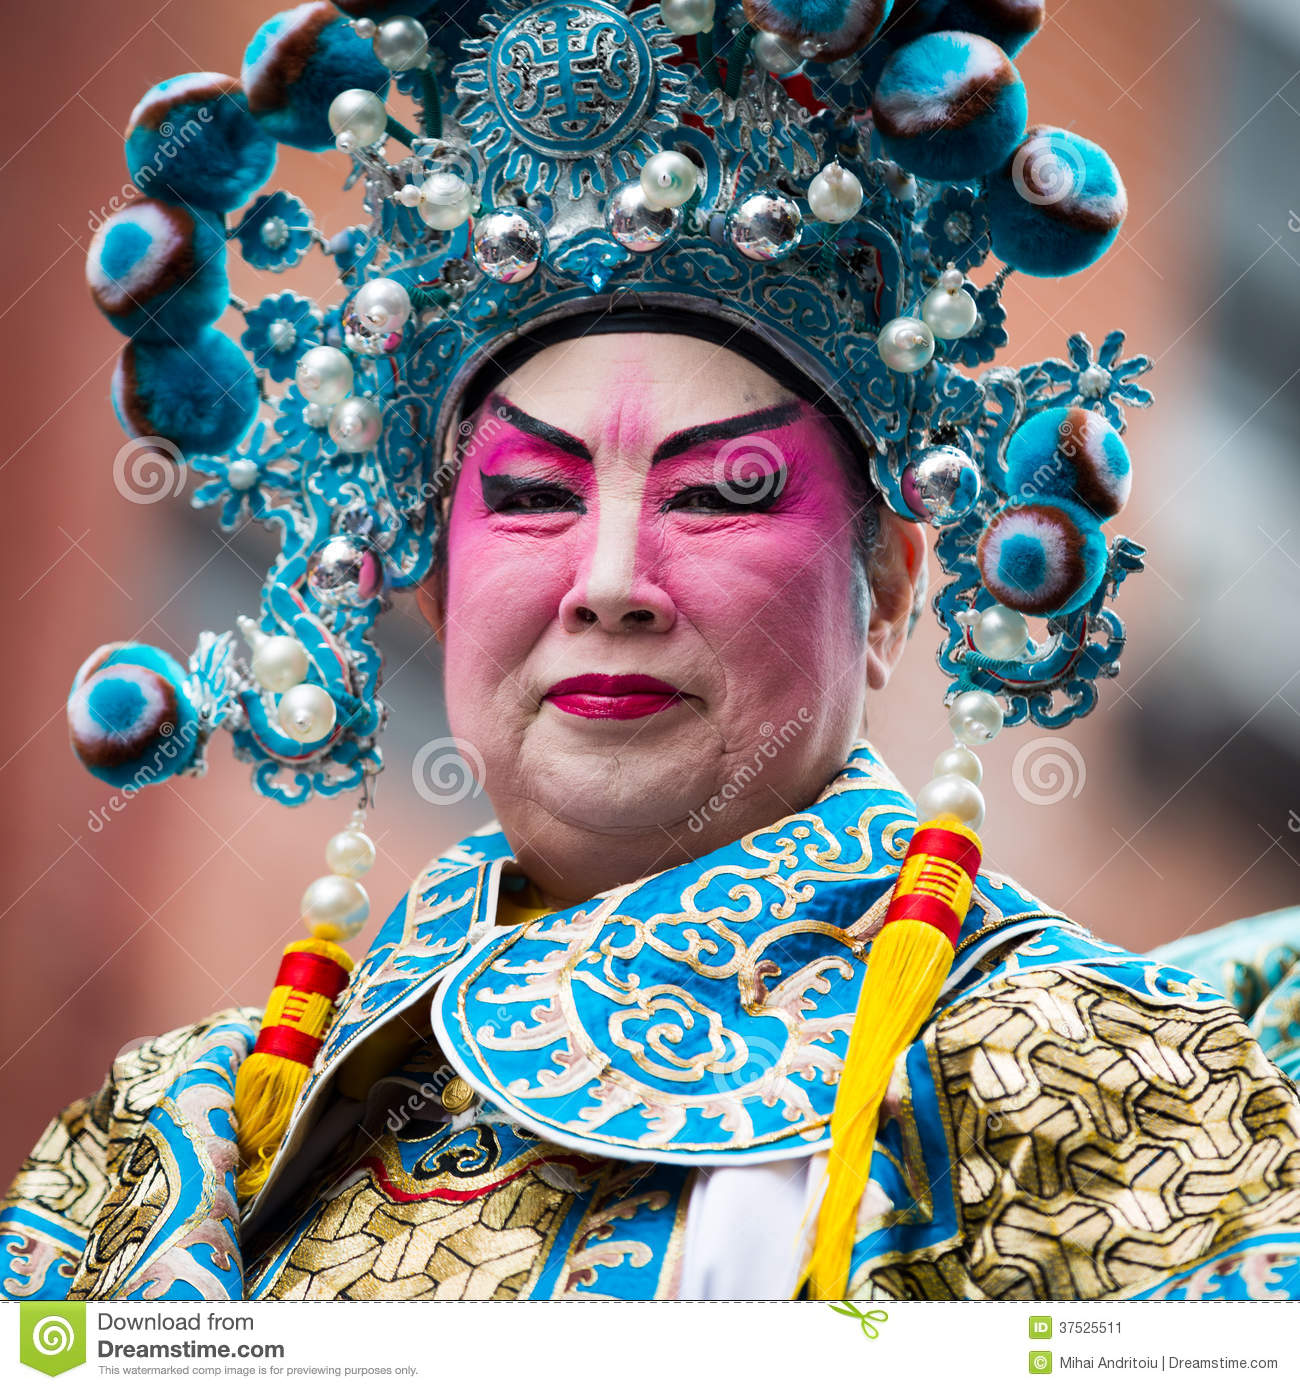 Chinese man parades at the Chines New Year Festival